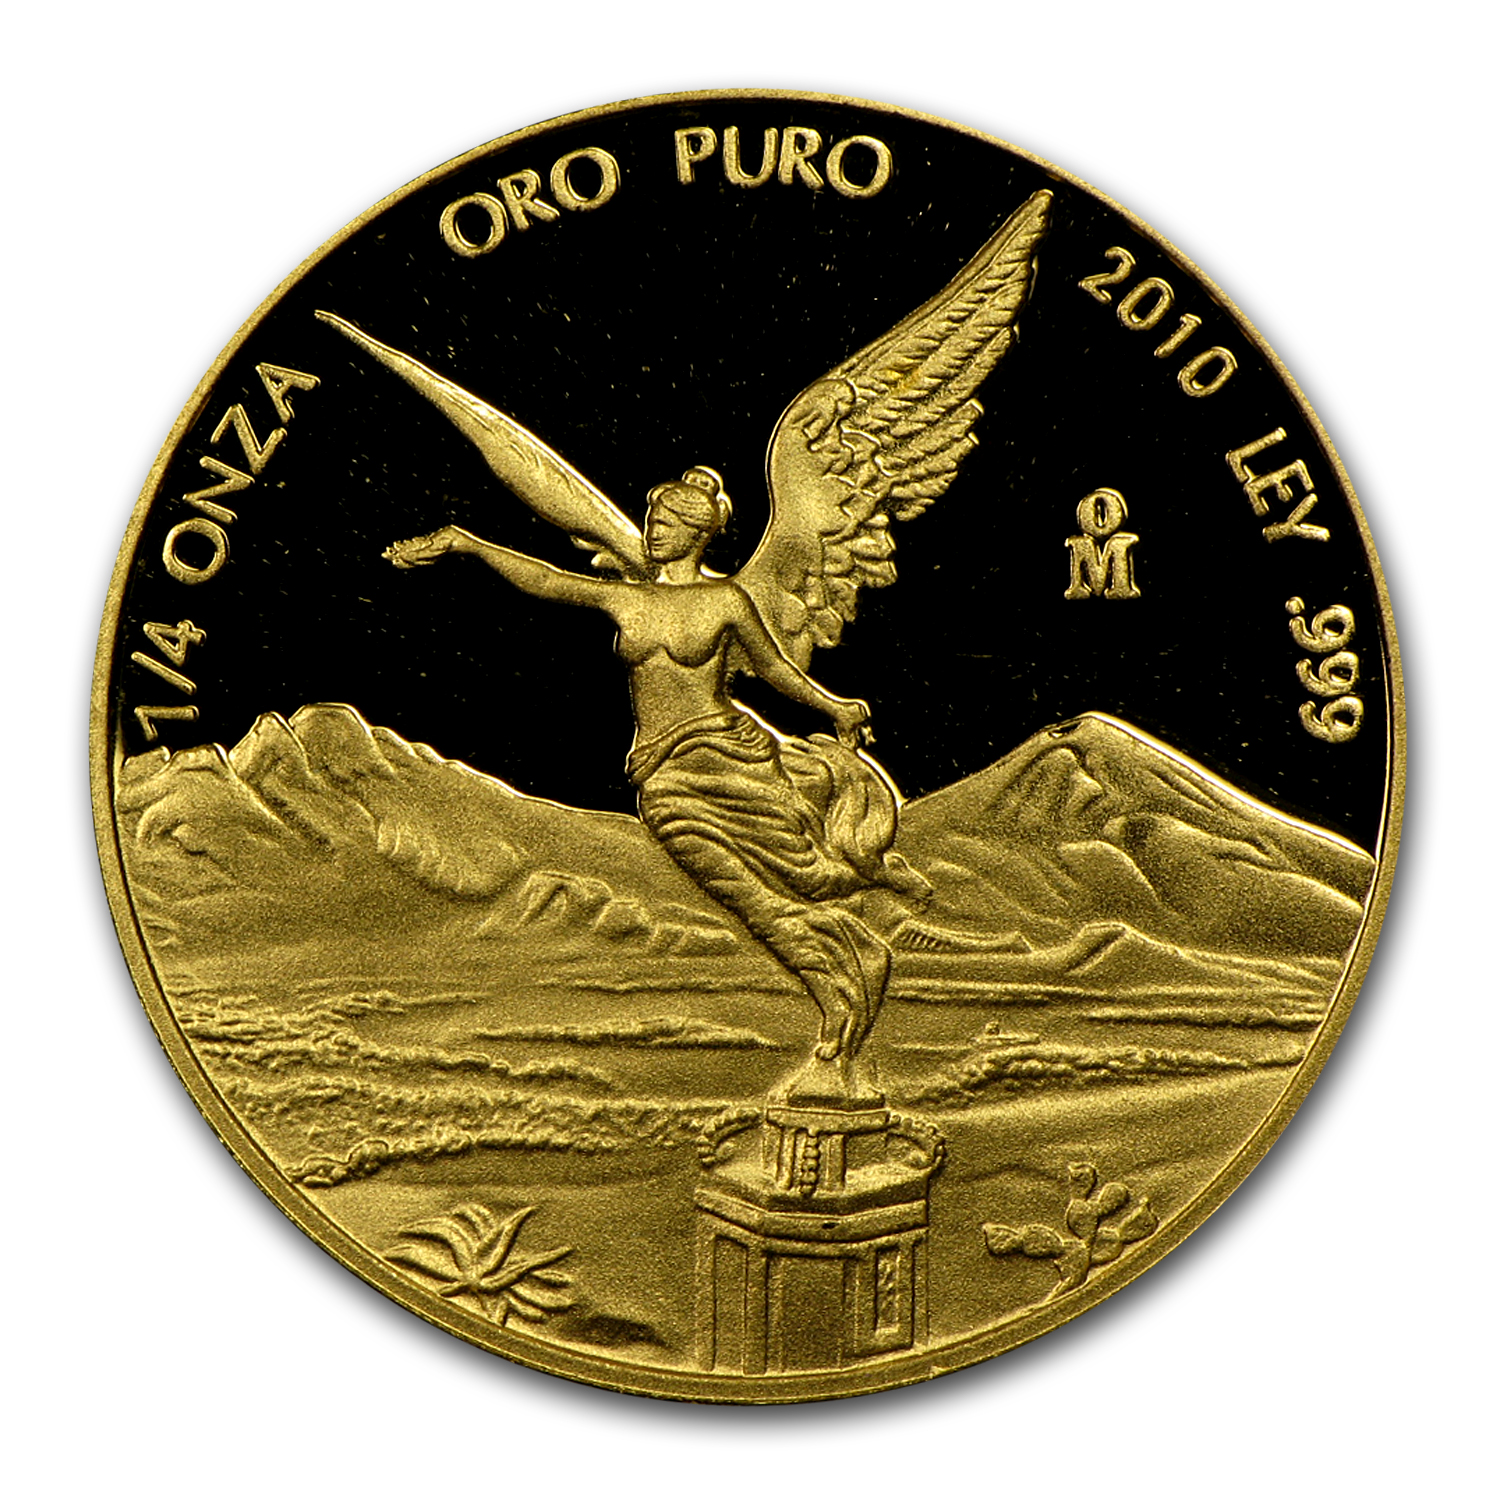 2010 Mexico 1/4 oz Proof Gold Libertad